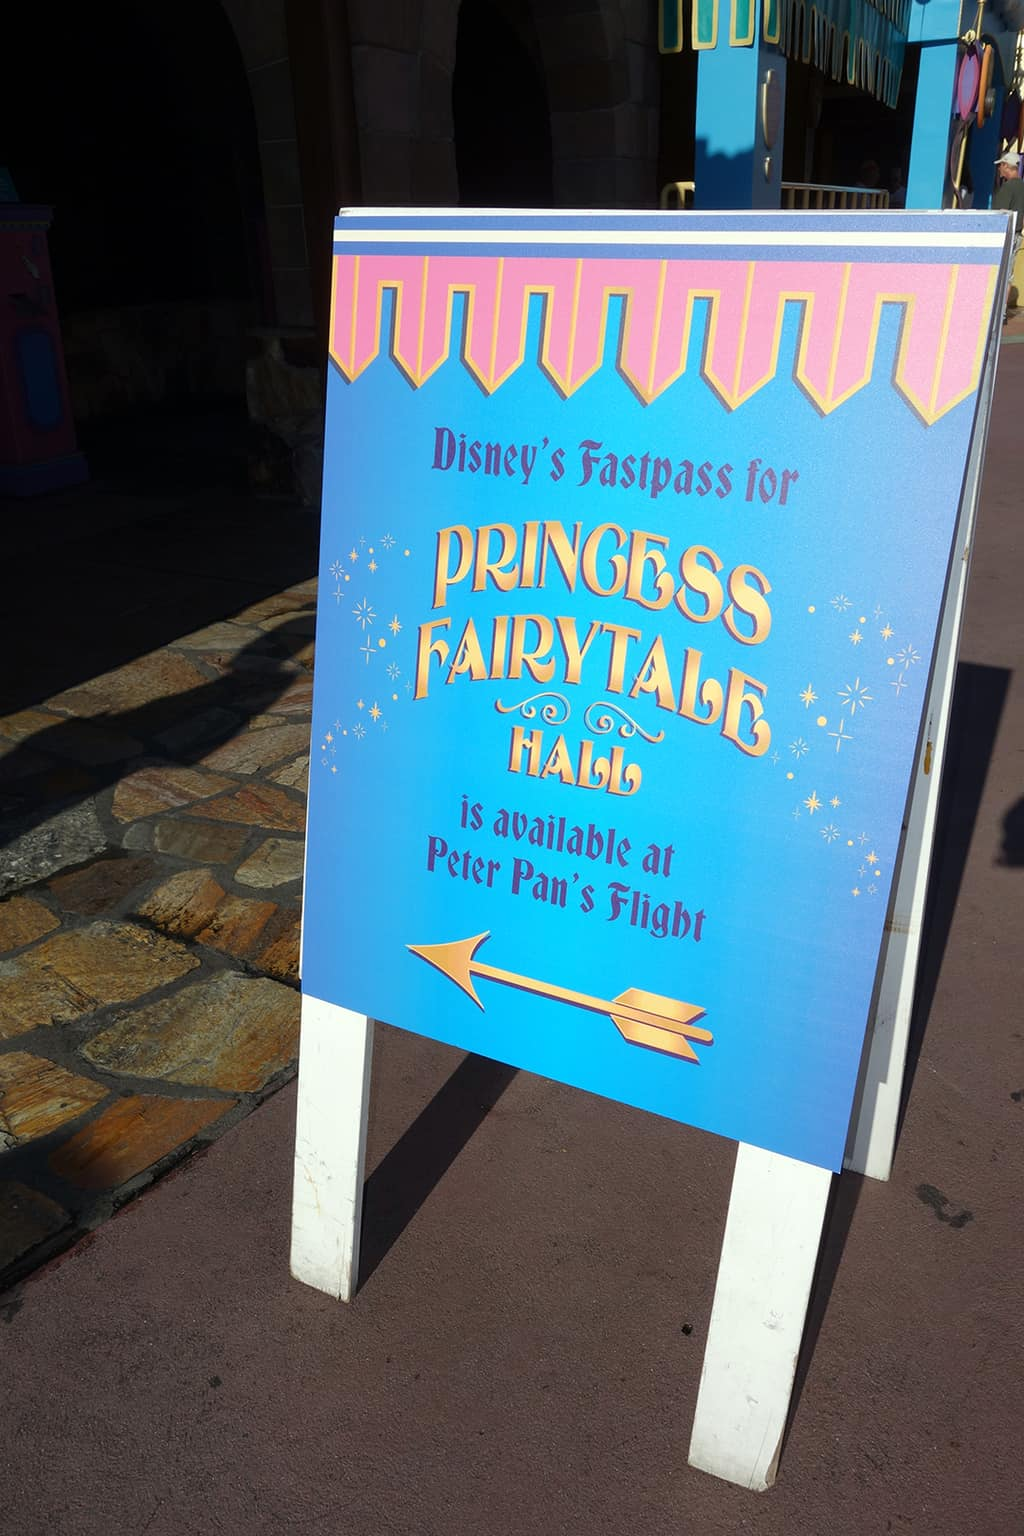 Once you get to the Peter Pan's Flight Fastpass distribution area, you'll see another handy sign pointing at the machines